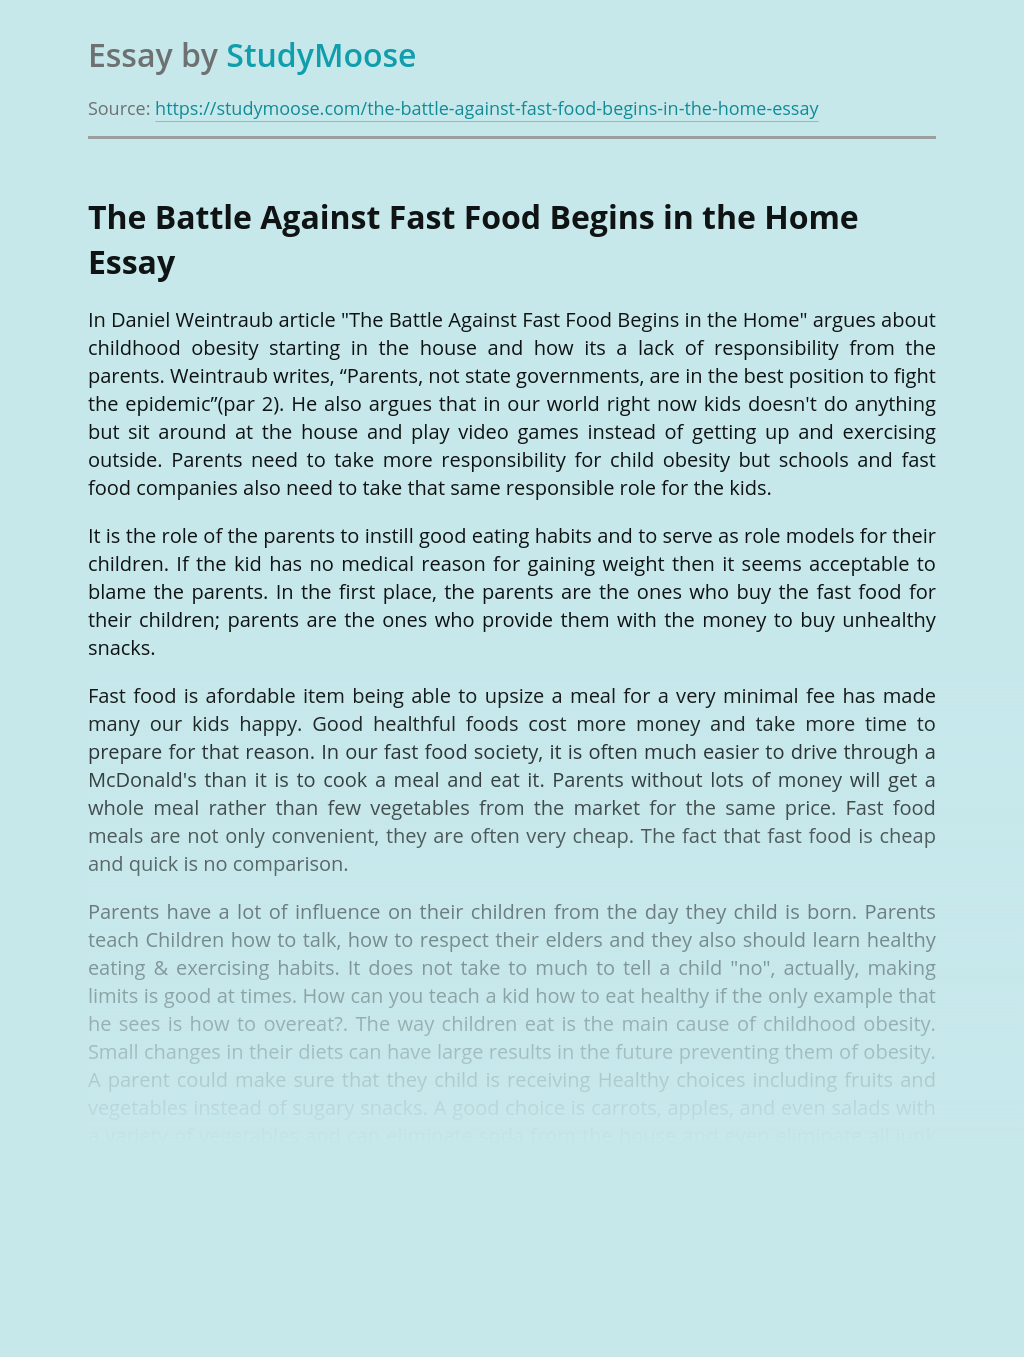 The Battle Against Fast Food Begins in the Home